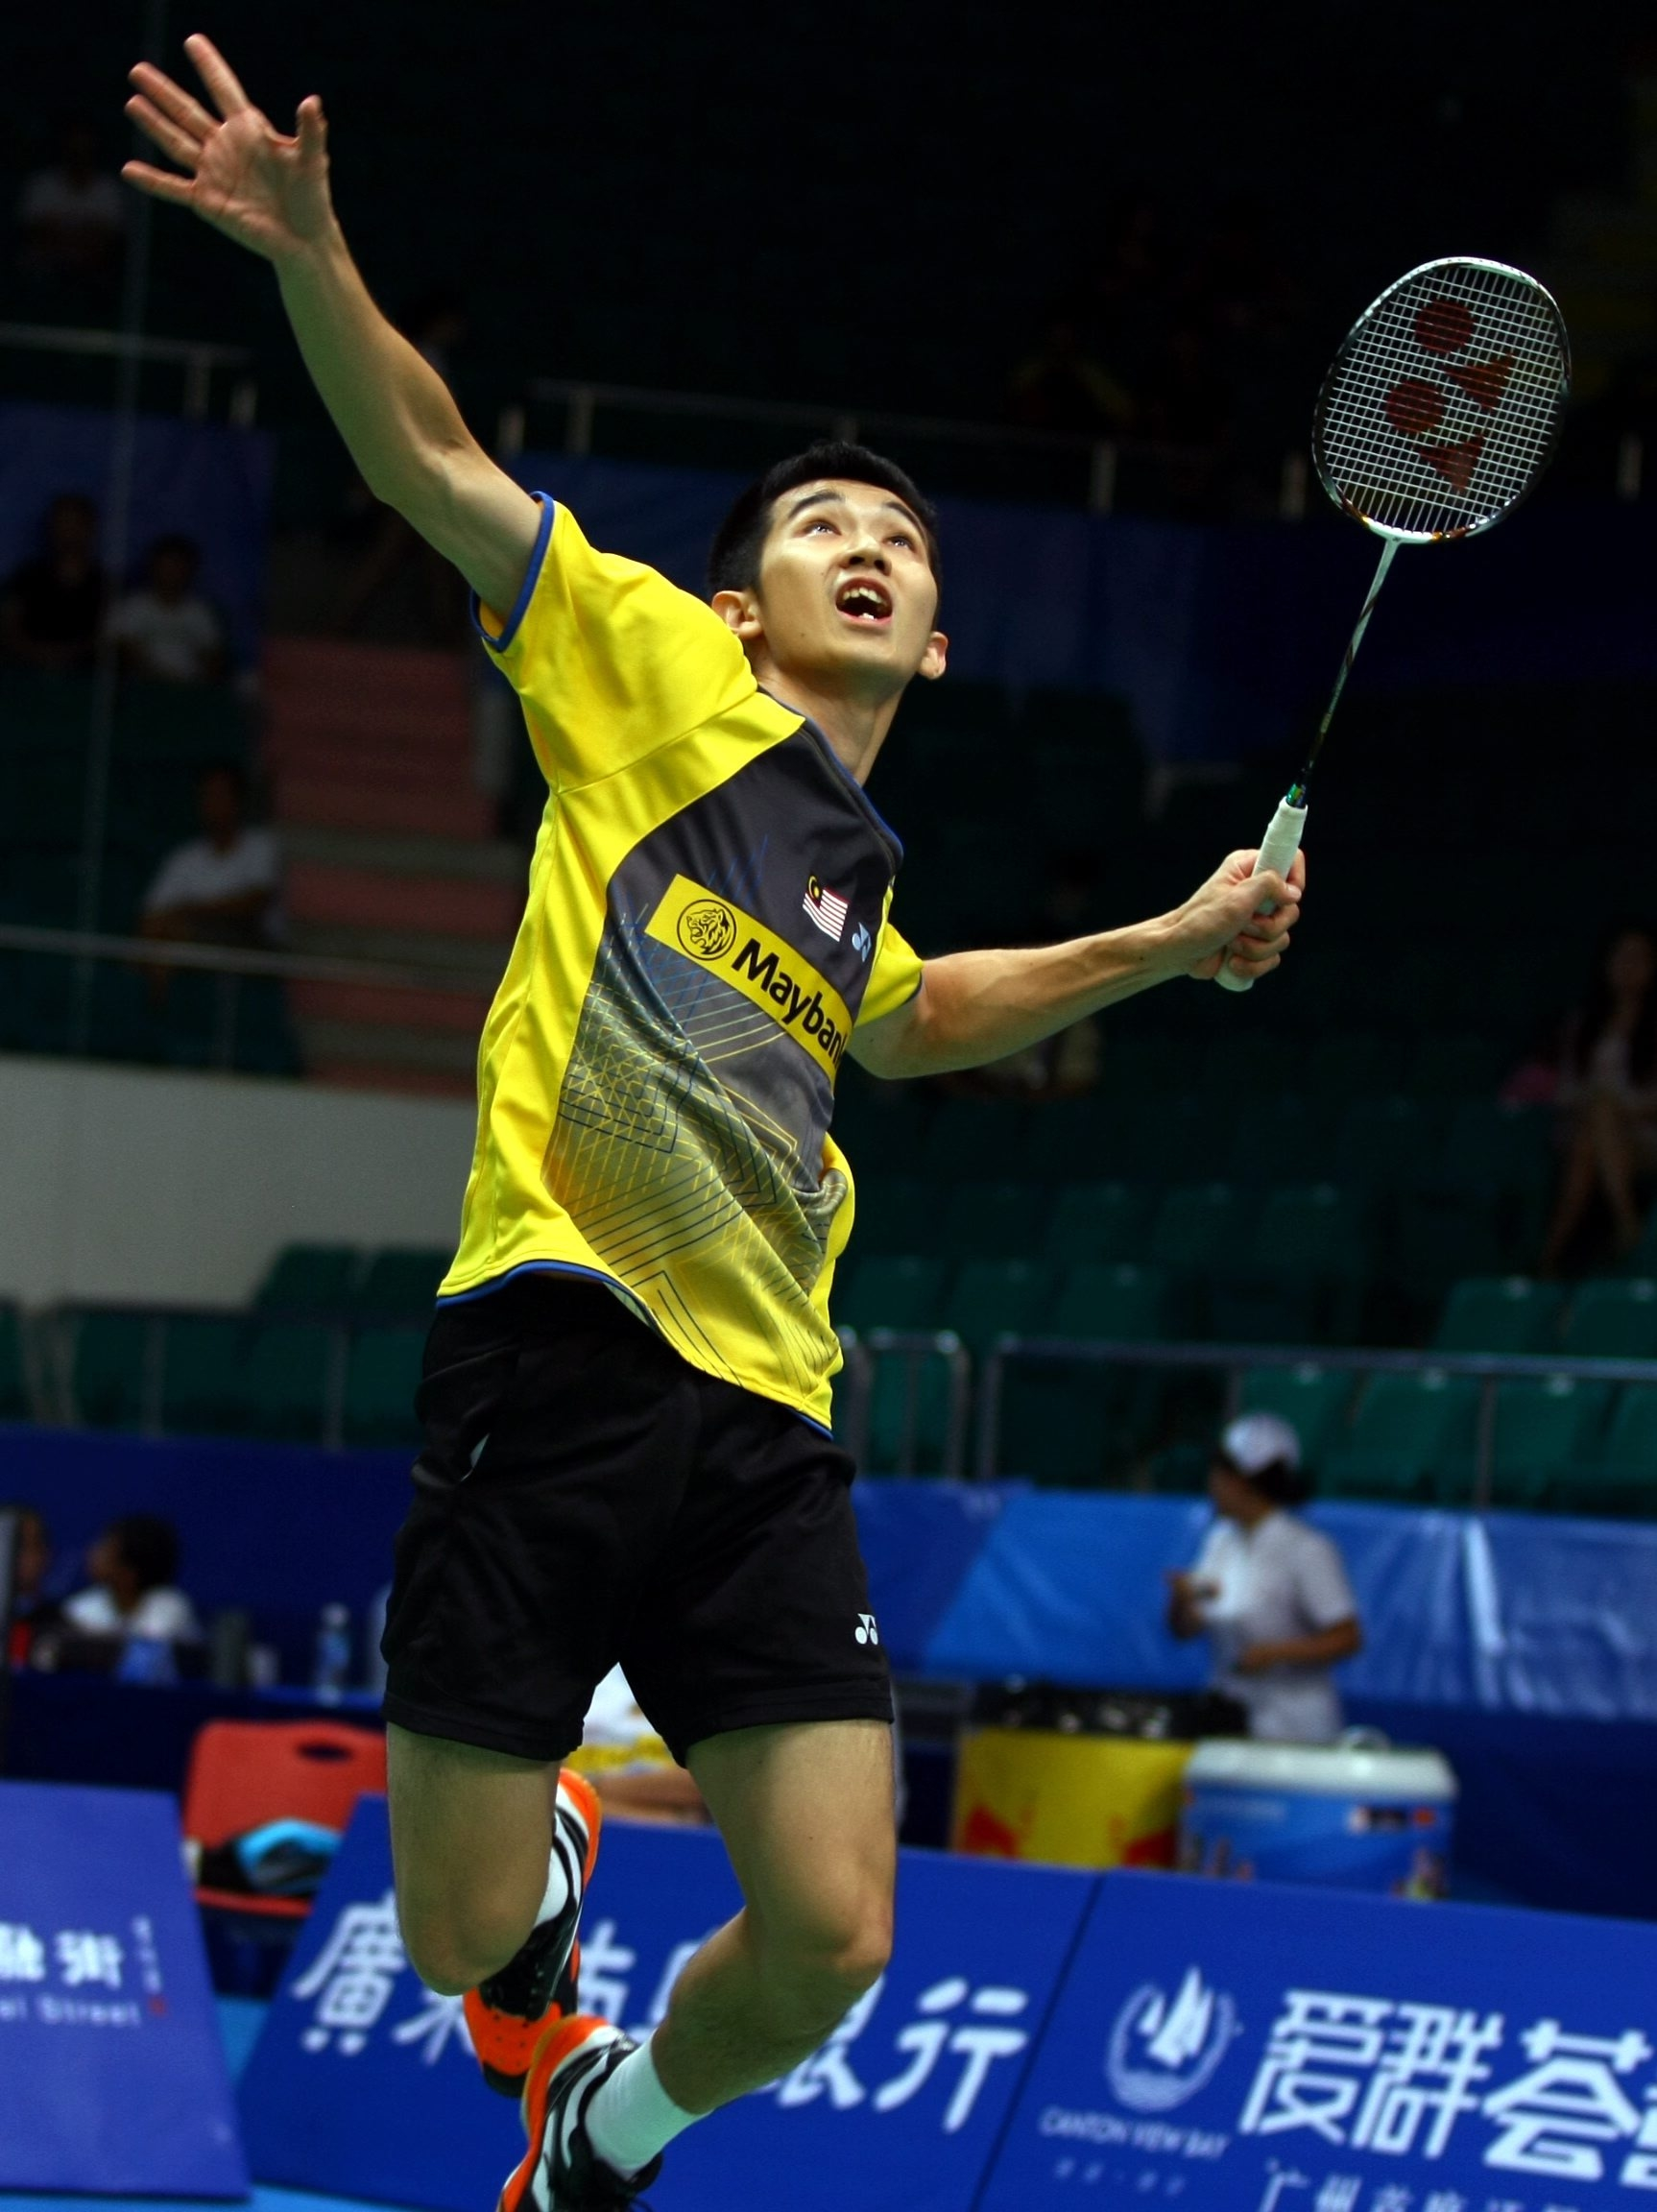 Wei Feng was impressive in beating England's Rajiv Ouseph in straight games.